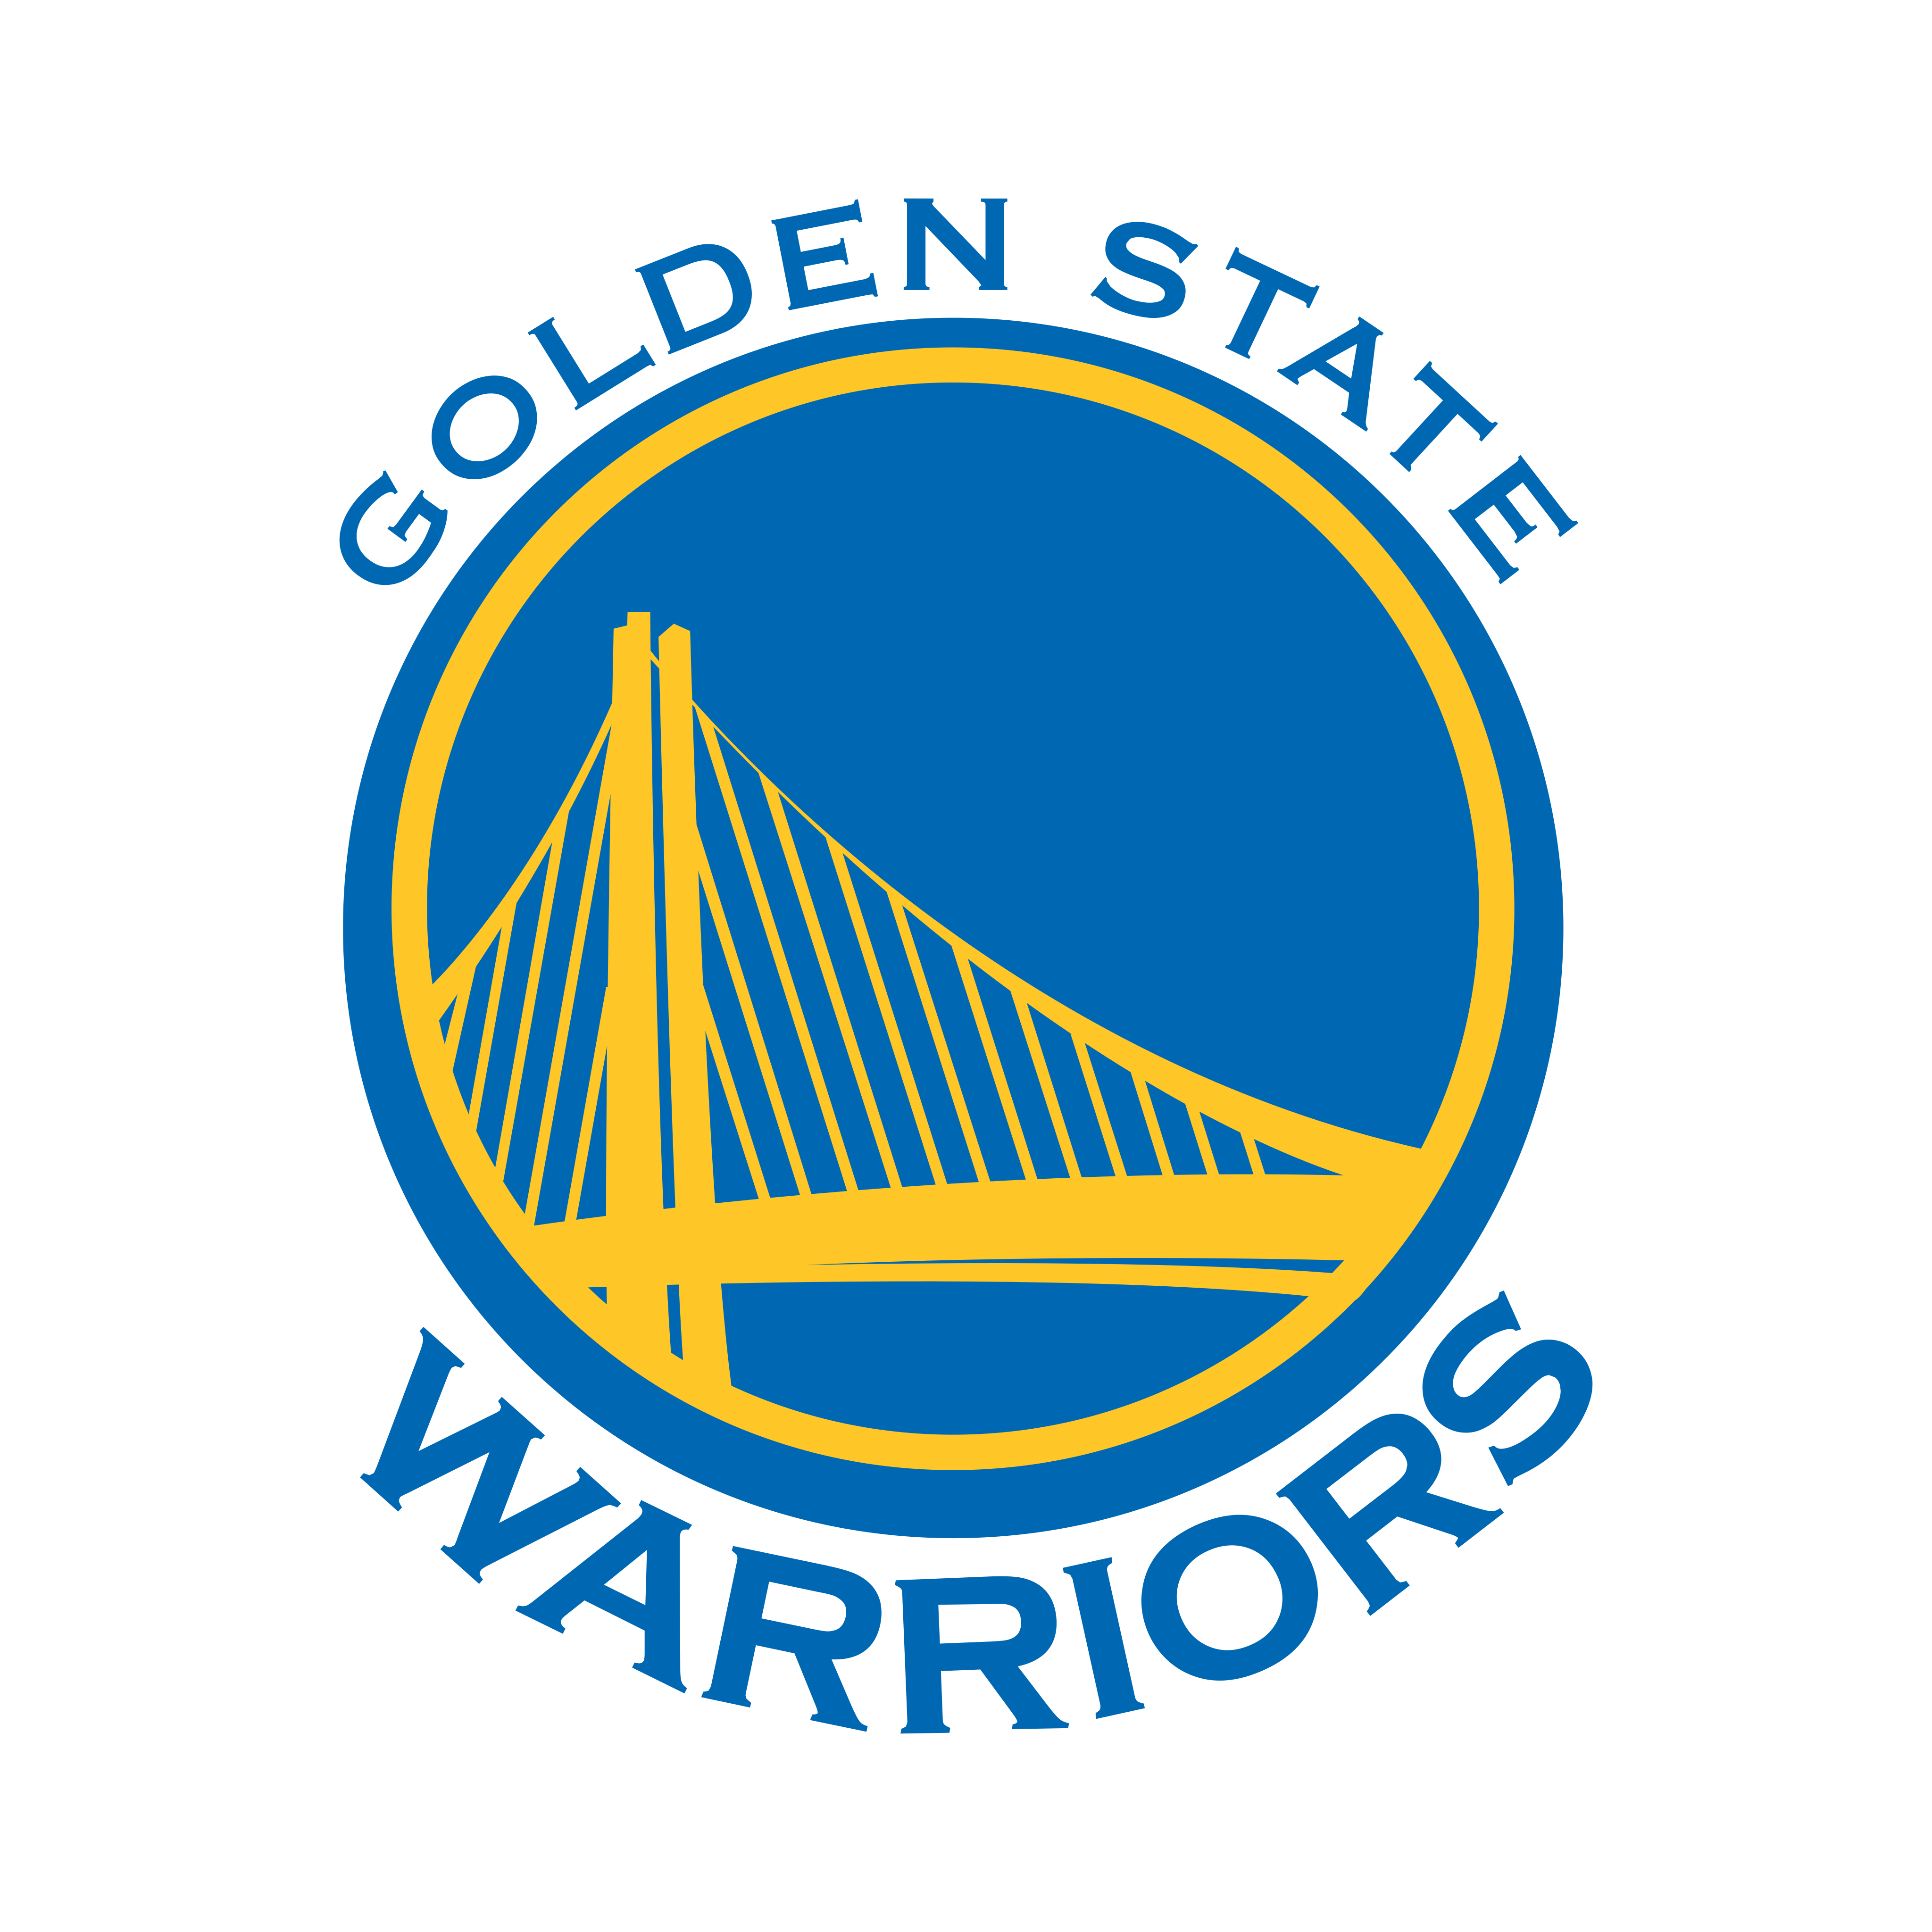 golden state warriors logo 0 - Golden State Warriors Logo